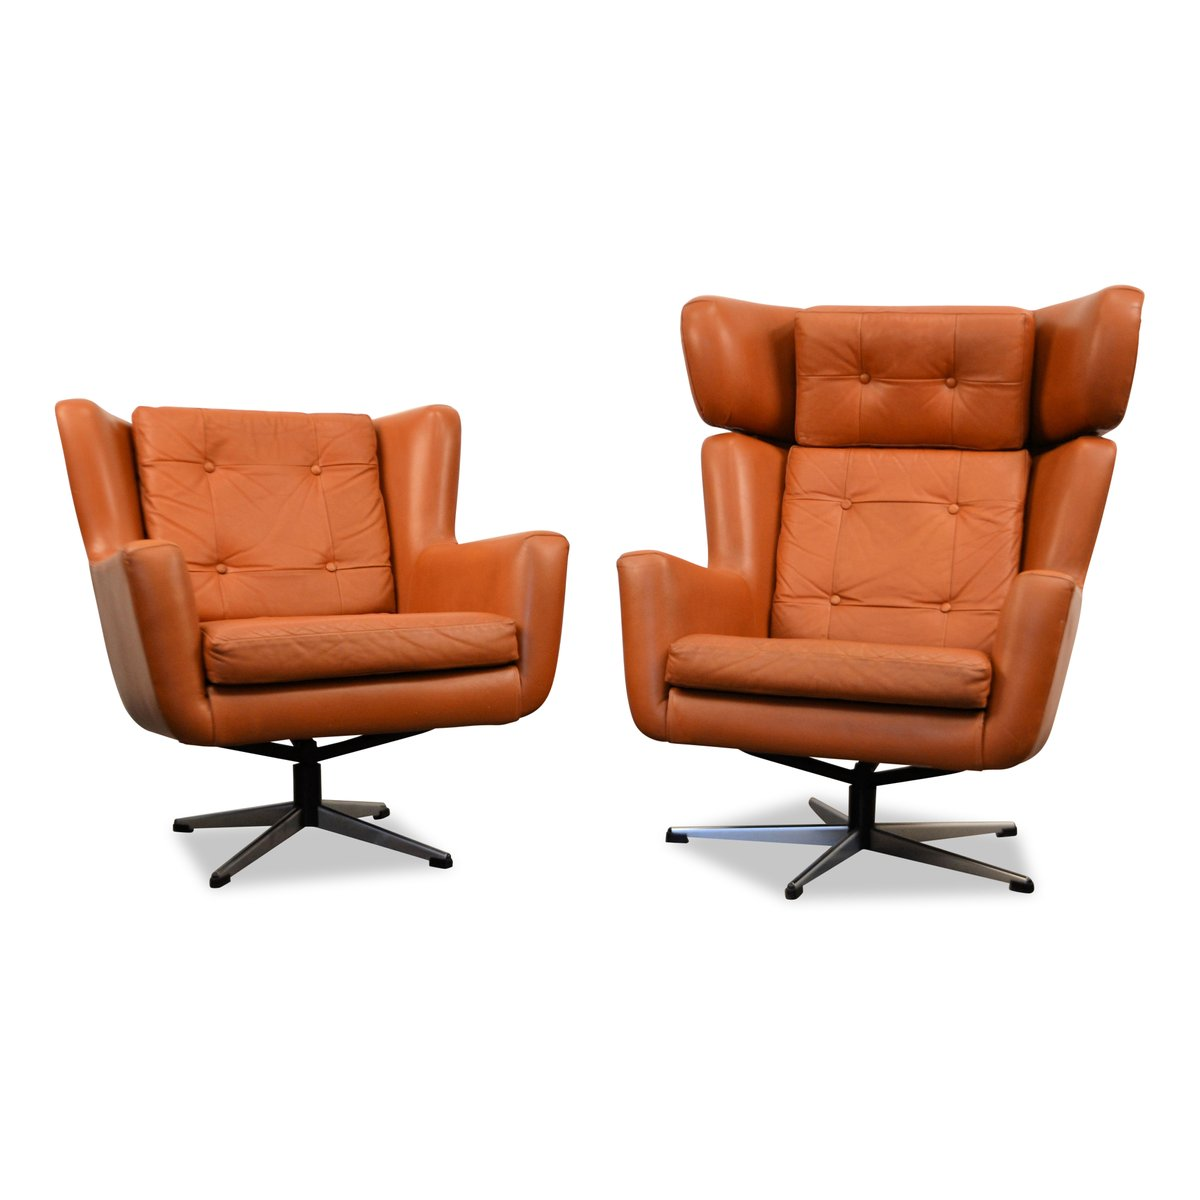 Mid century modern leather swivel chairs from skjold sørensen 1960s set of 2